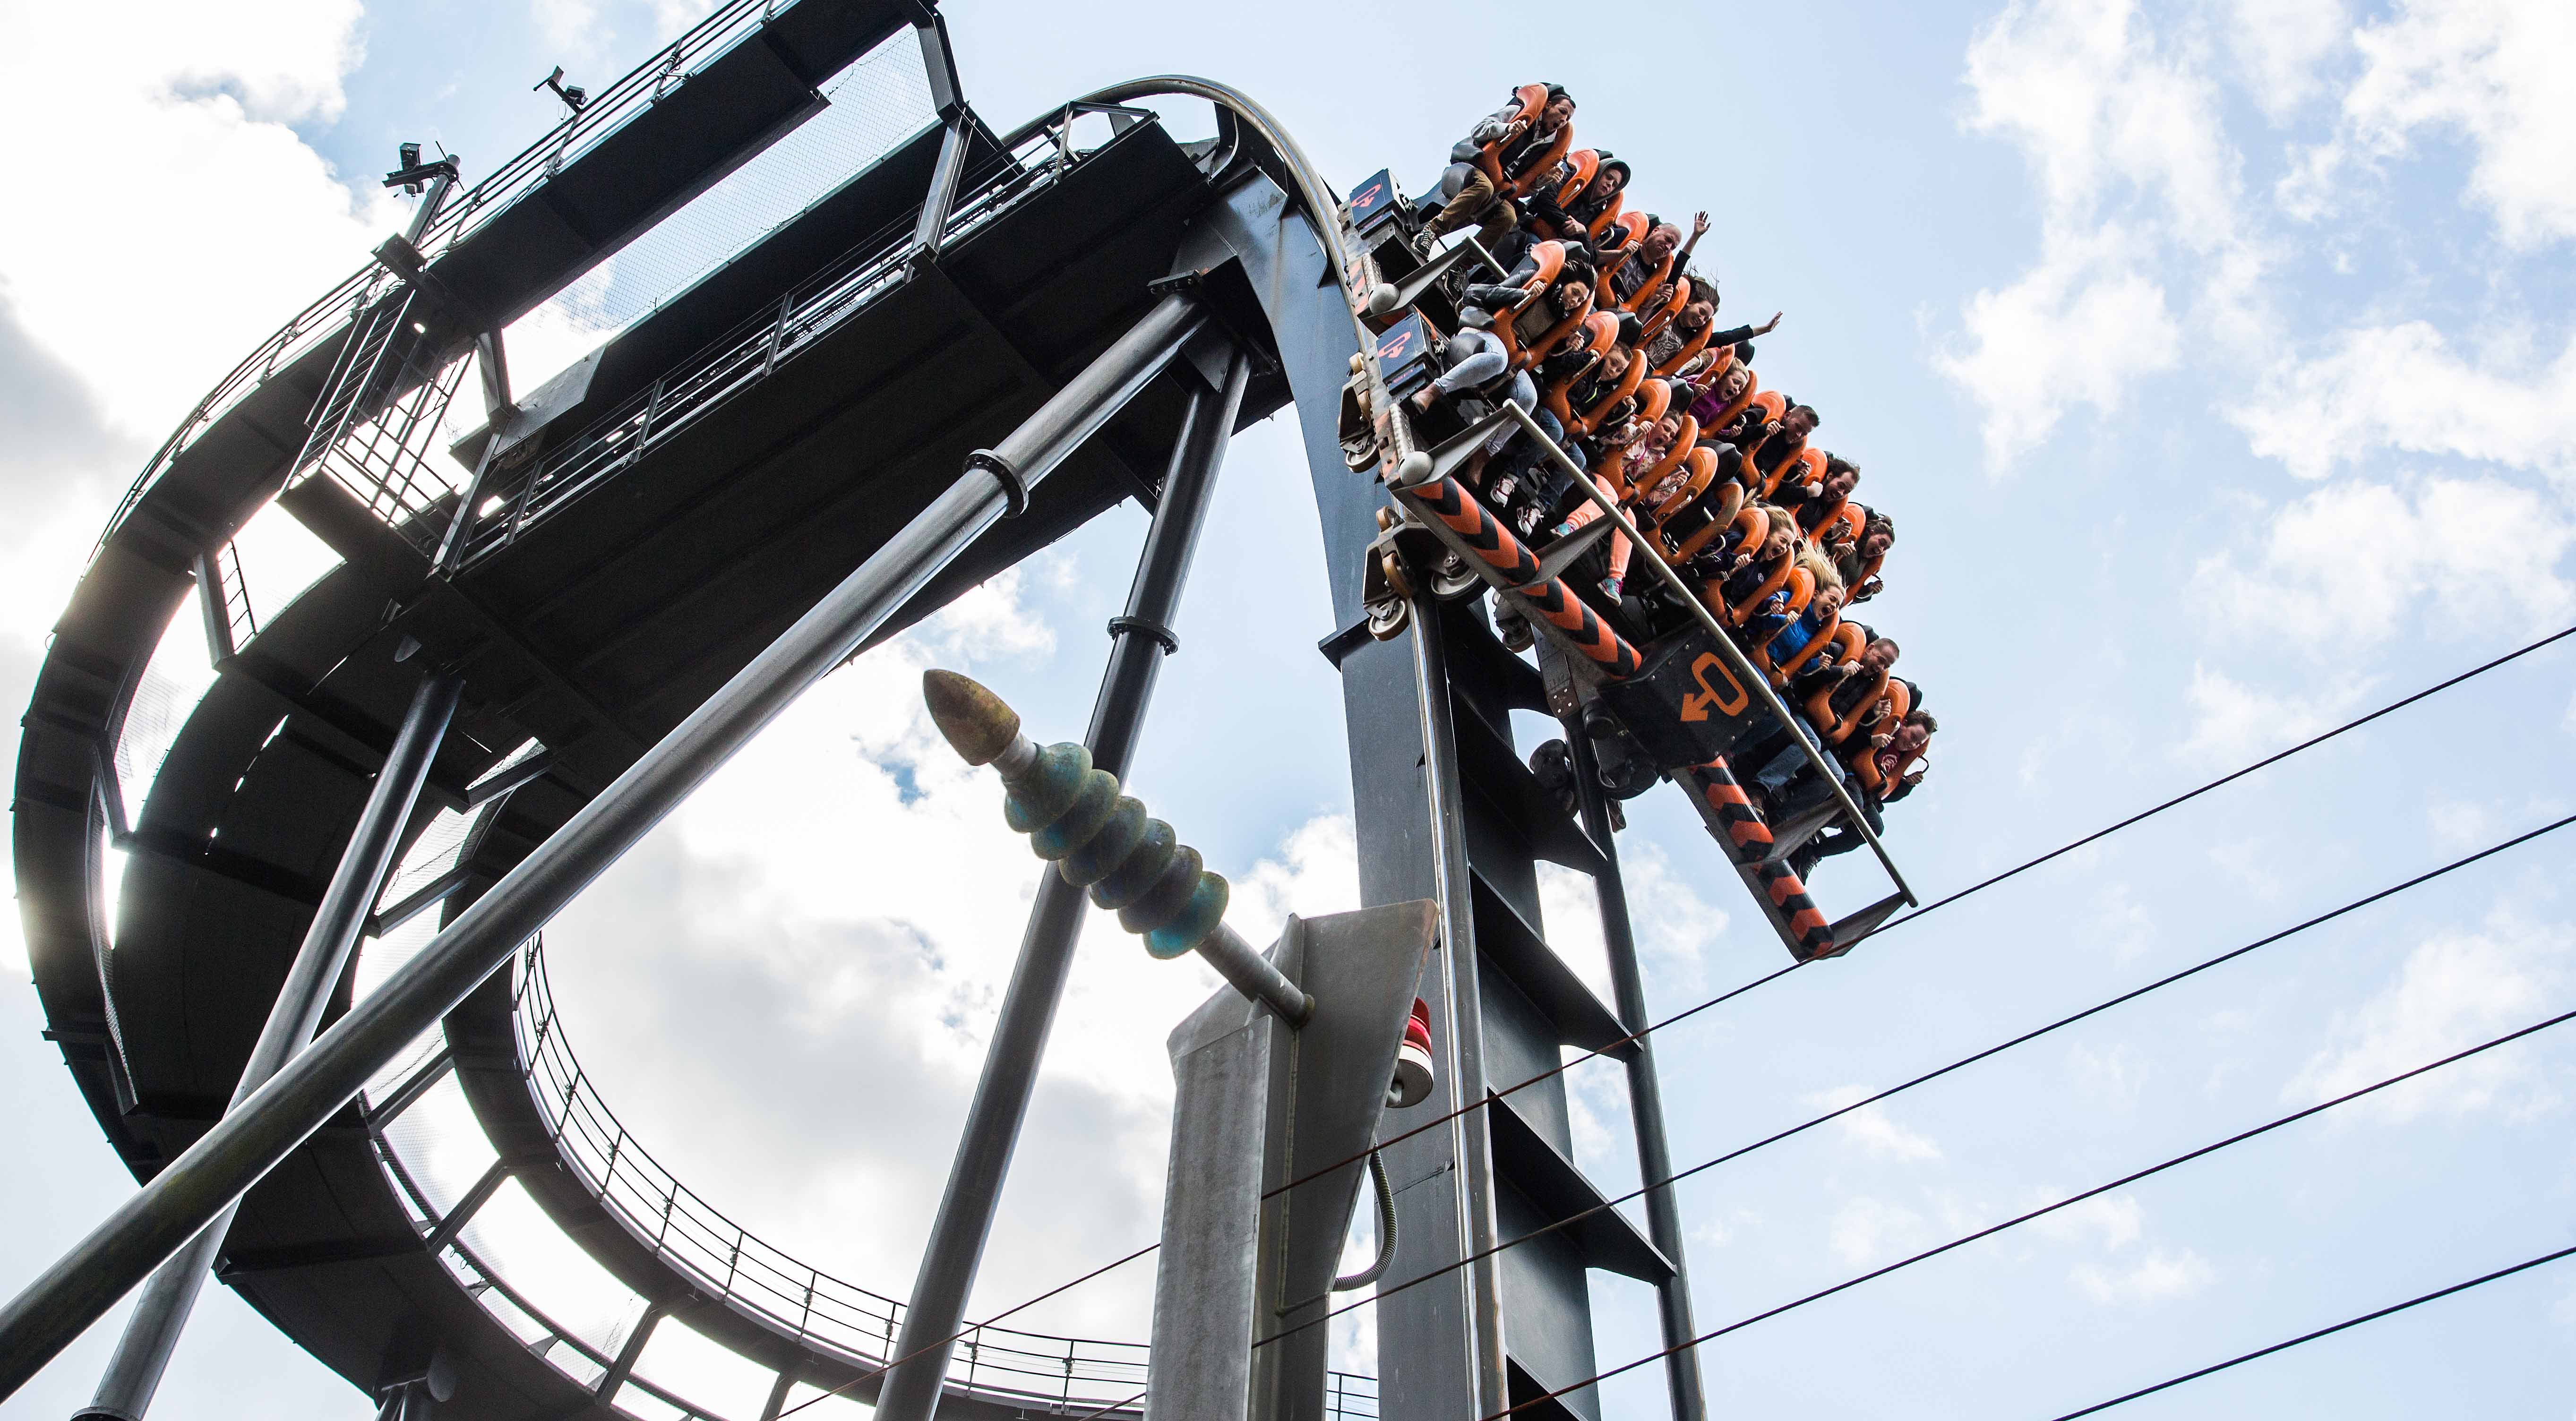 Oblivion roller coaster at Alton Towers